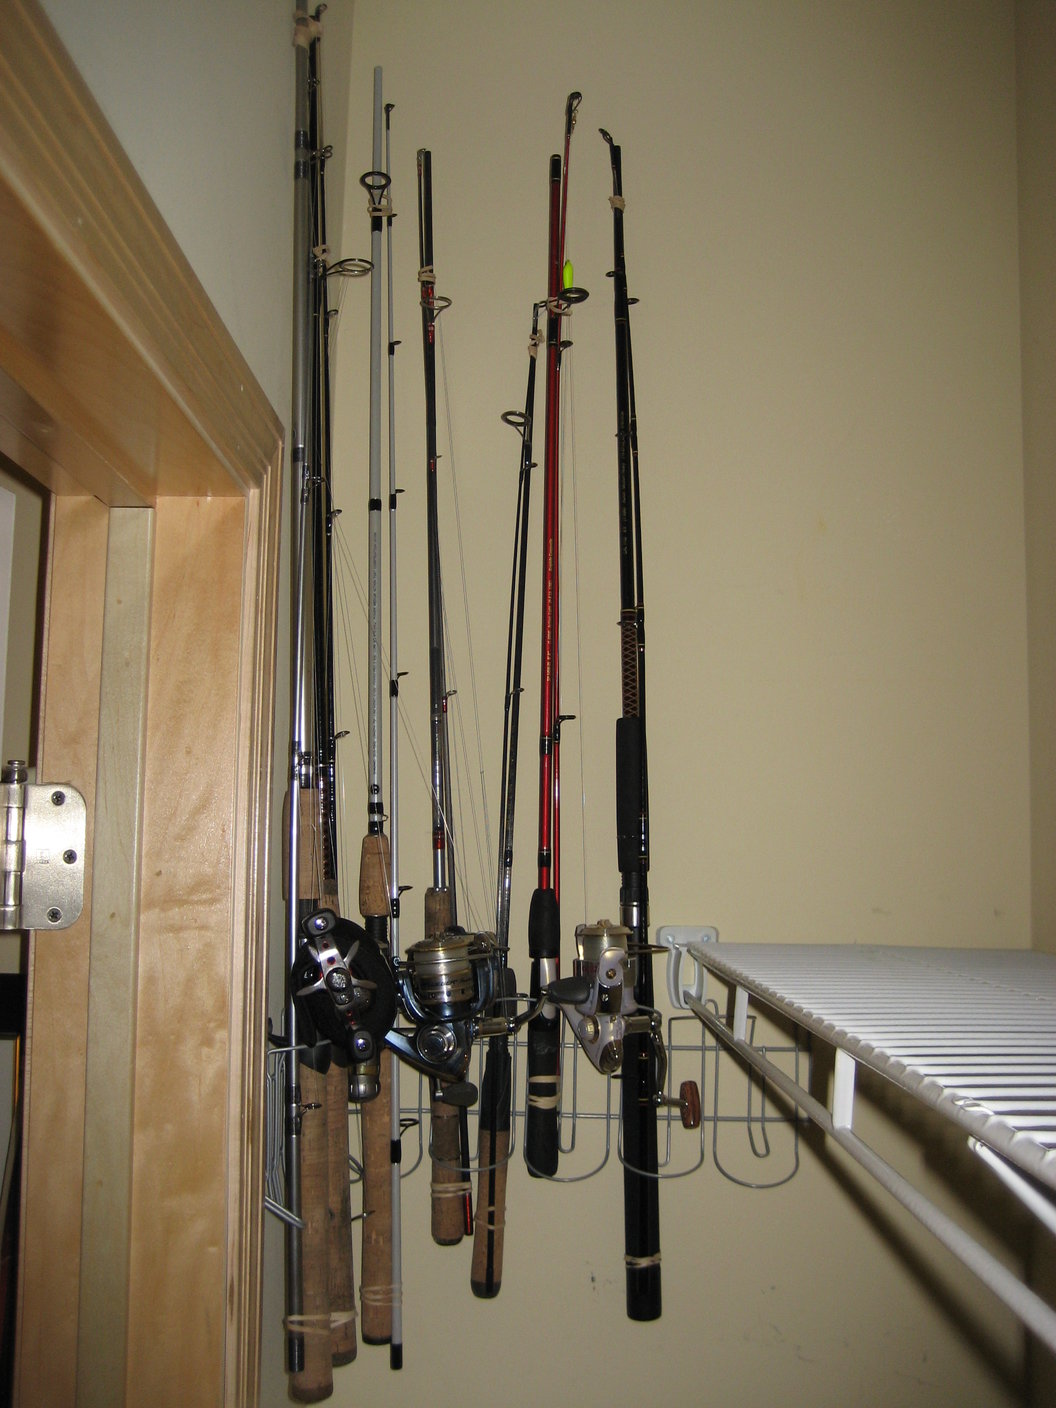 Fishing rod rack 10 ikea hack signum cable management for Fishing rod holders for home